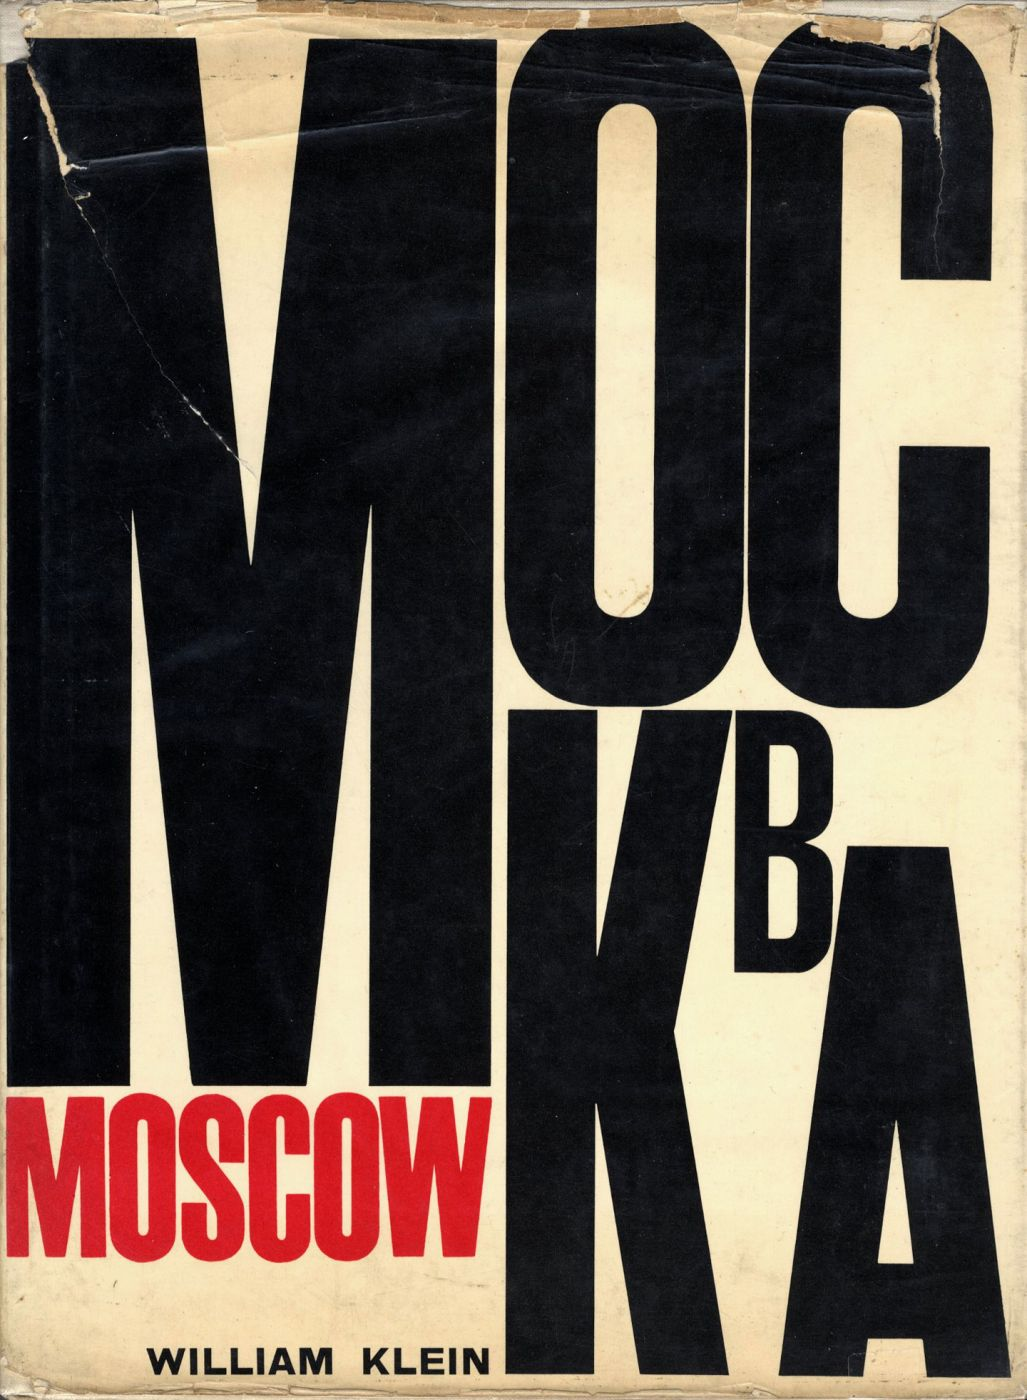 William Klein: Moscow / Mockba (First English Edition) [SIGNED]